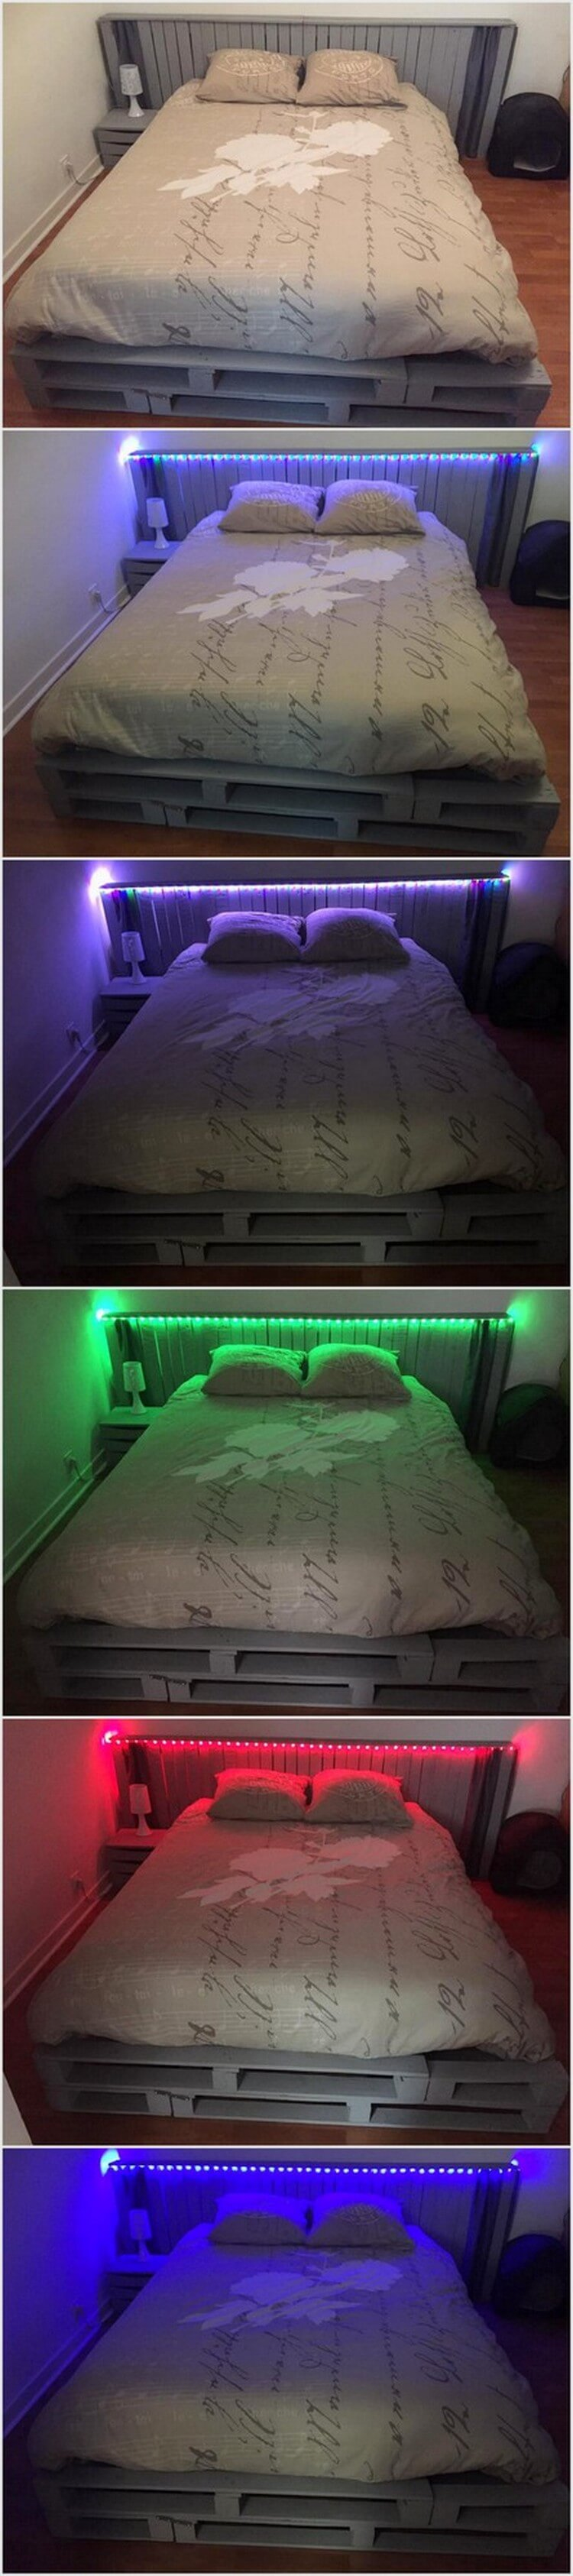 Wood Pallet Headboard with Lights (2)